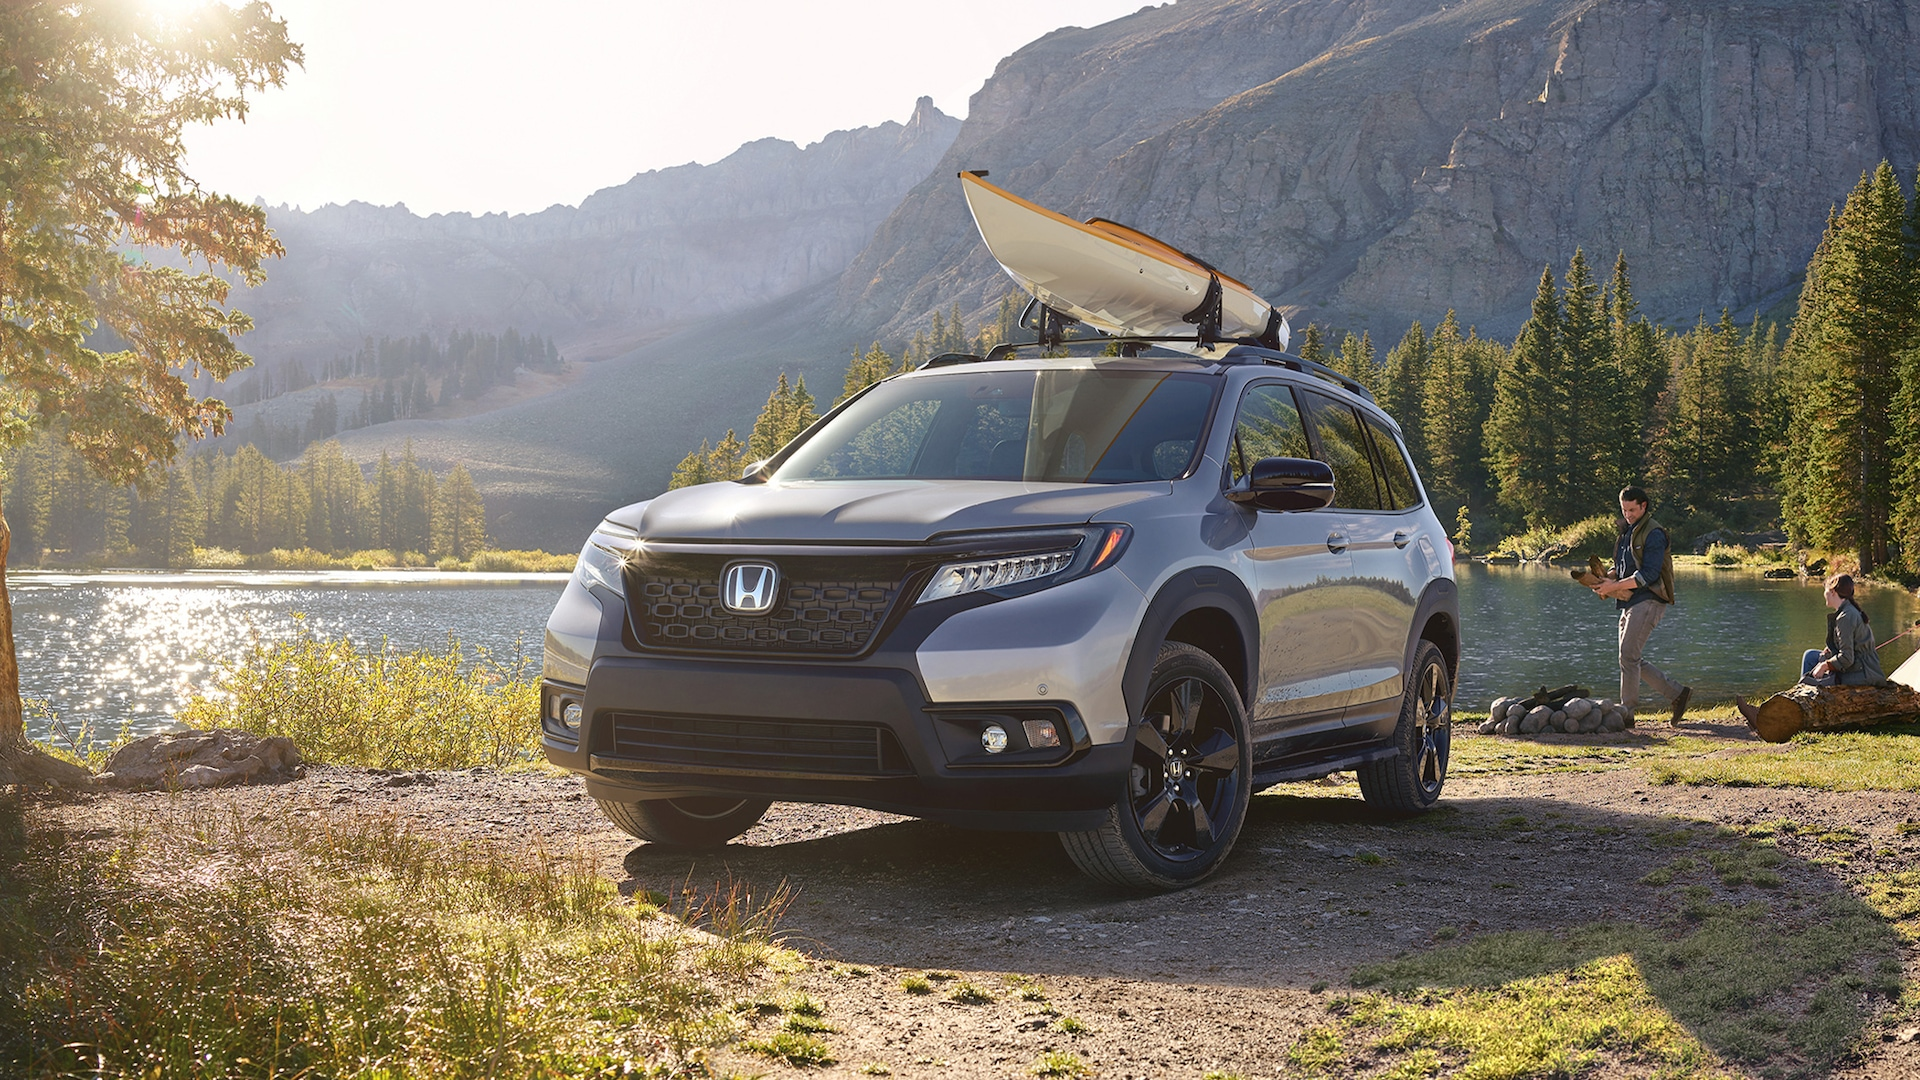 Driver-side front 3/4 view of 2020 Honda Passport Elite in Lunar Silver Metallic, with accessory kayak attachment, parked at a lakeside campground with male and female campers.